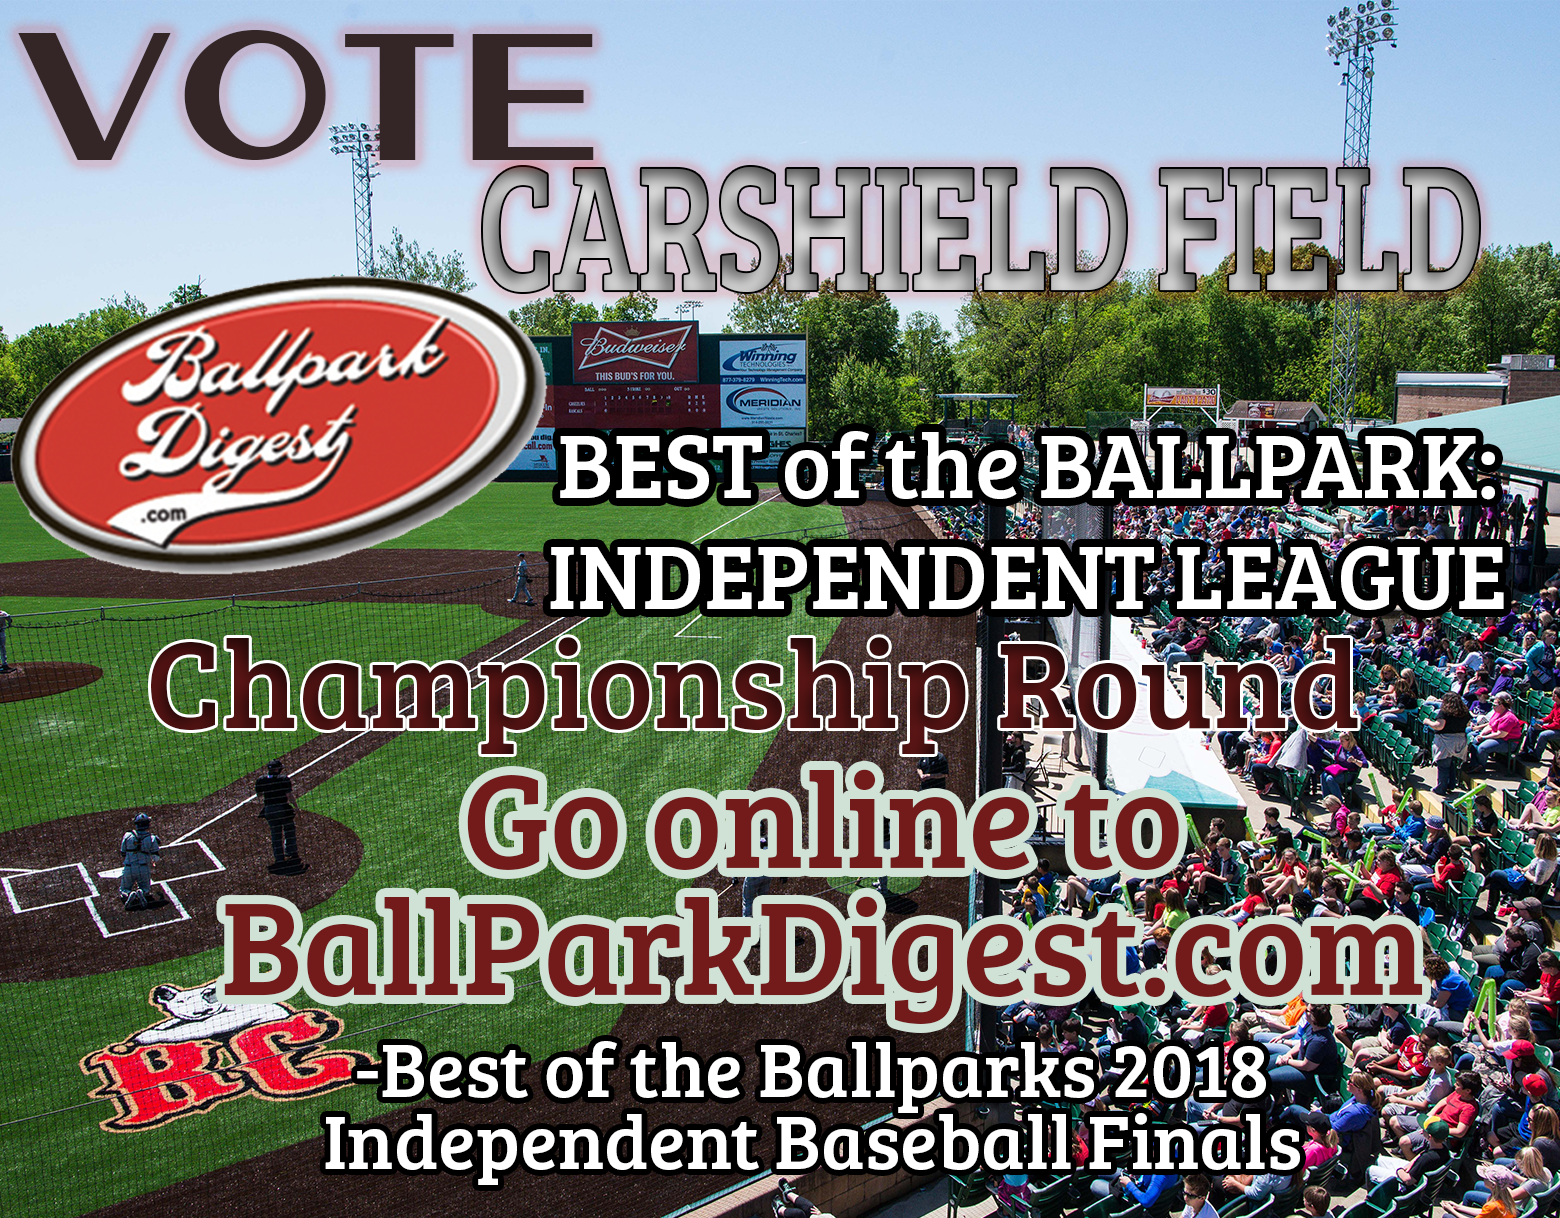 Best of the Ballparks Voting: Final Round